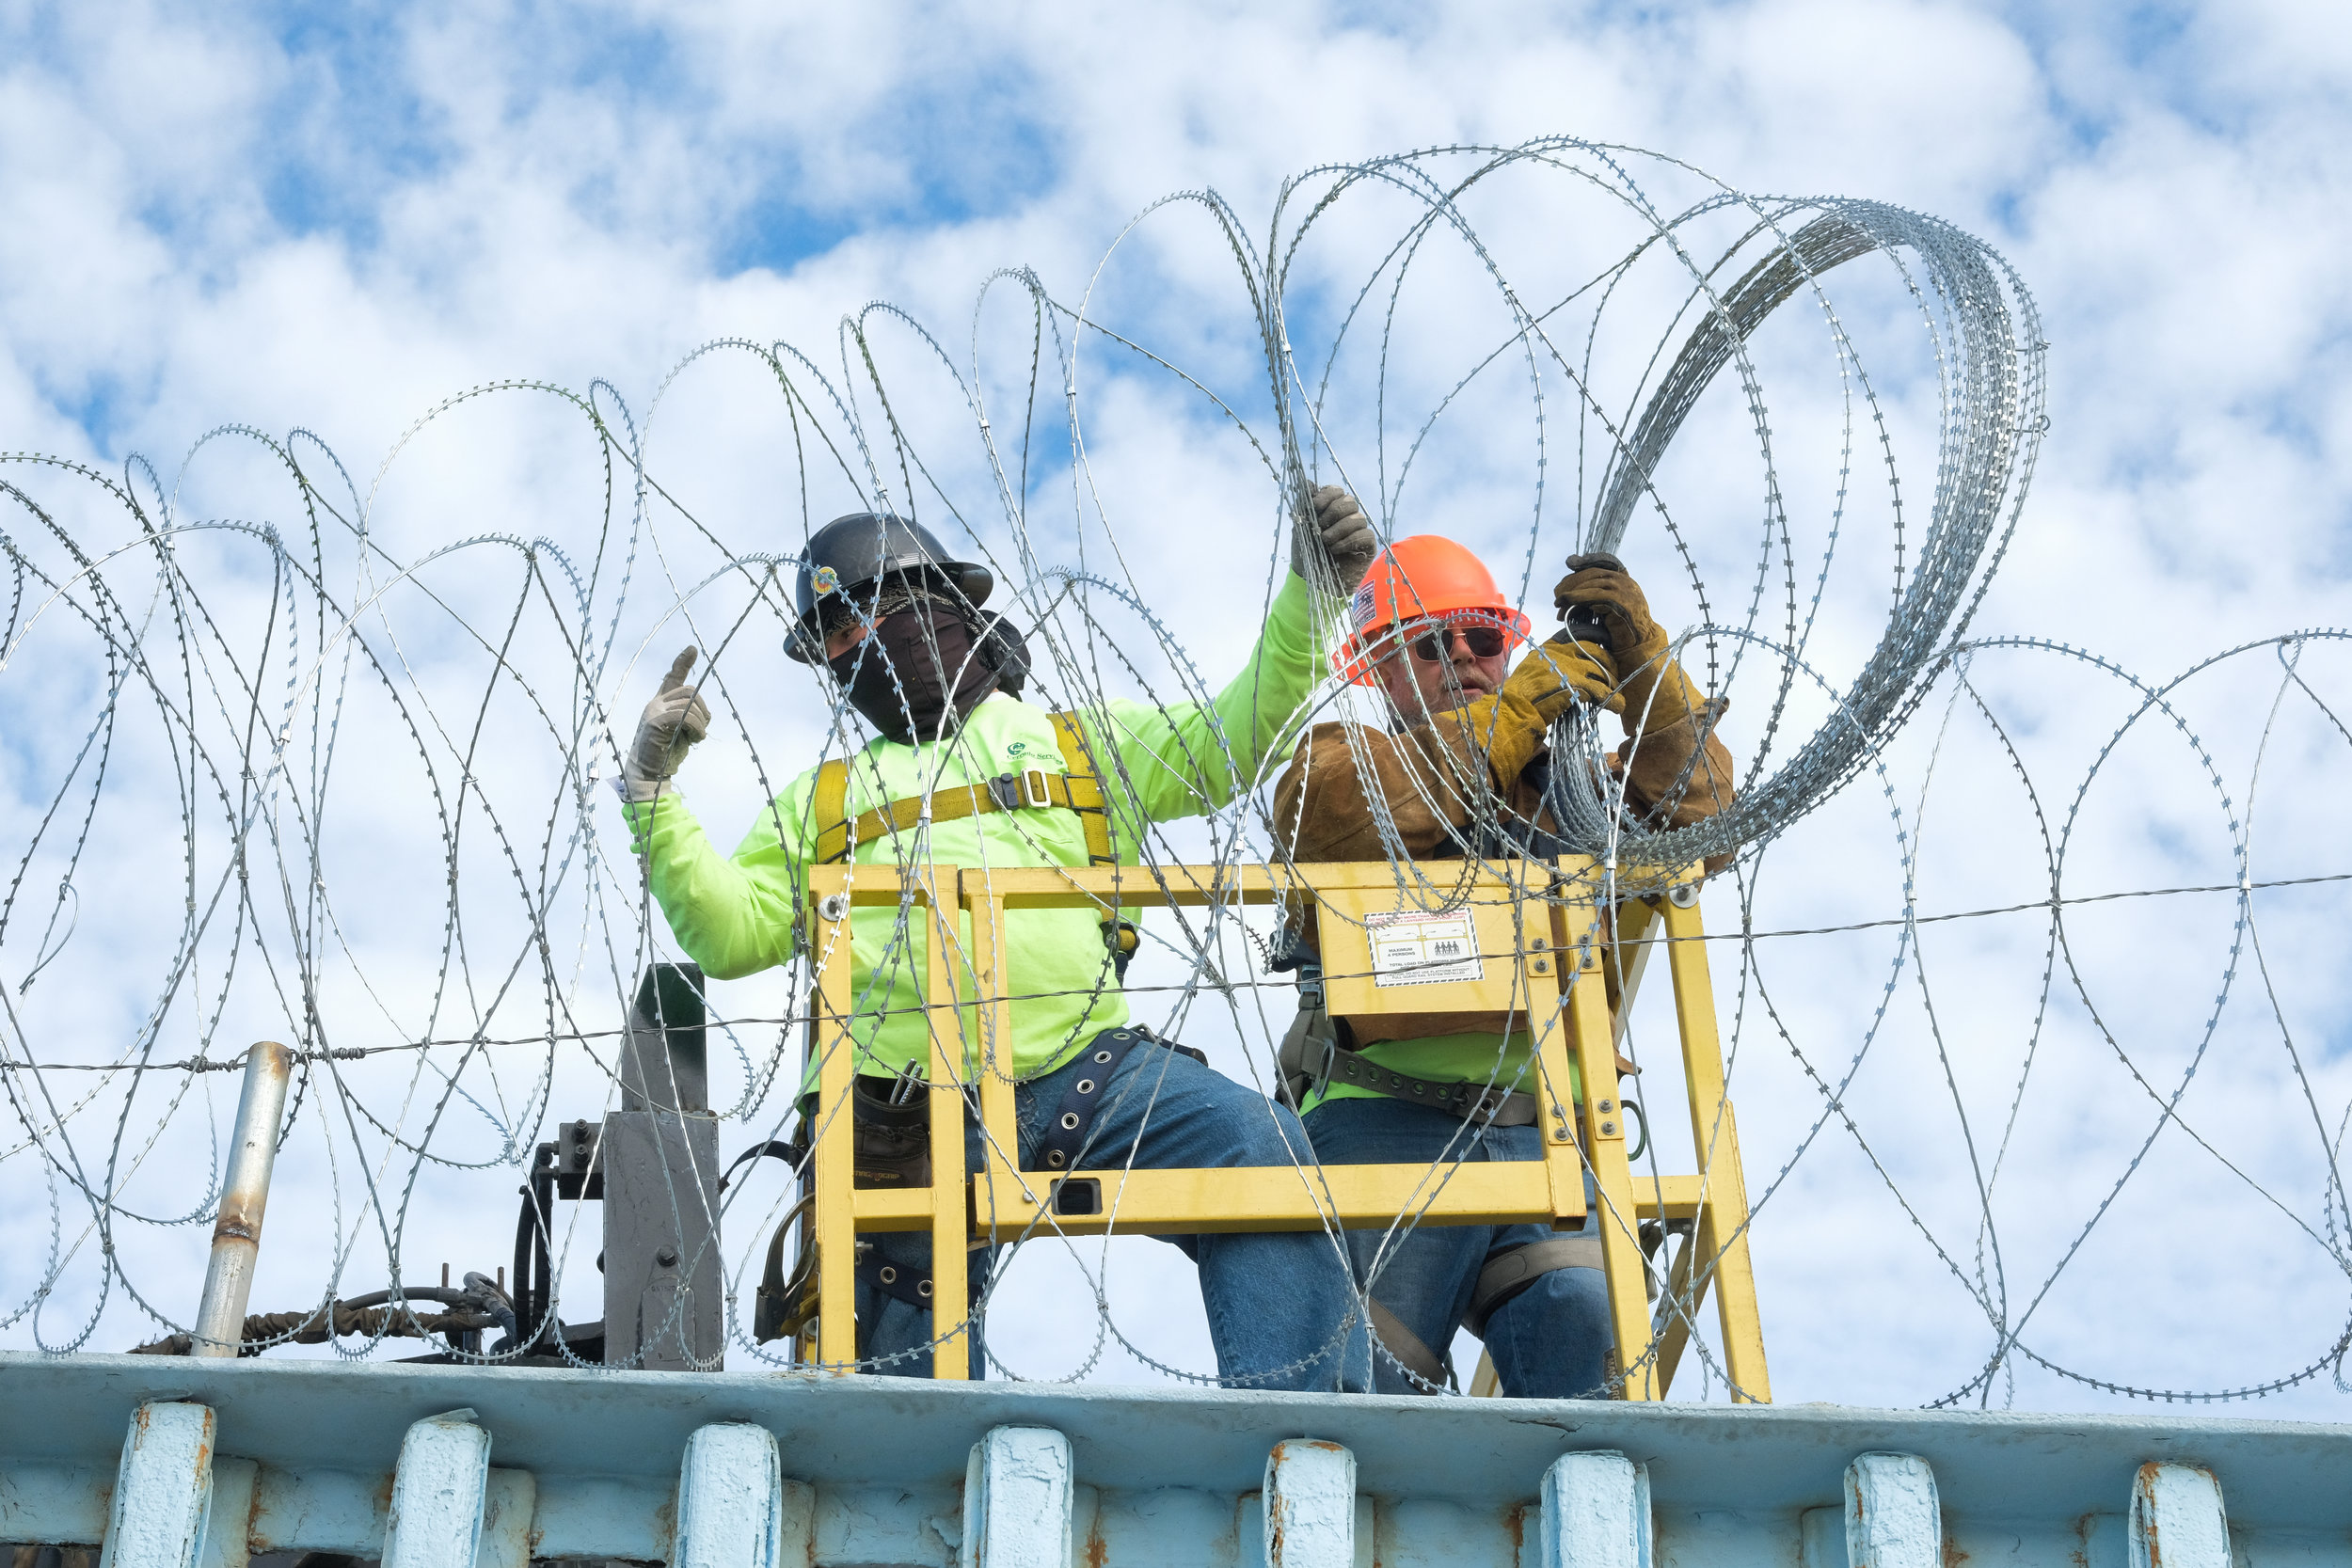 Construction workers on the United States side of the wall place Barbed Wire on top of the Border Wall fence in Friendship Park in Tijuana, Mexico on November 16, 2018. (Photo by Jayrol San Jose)